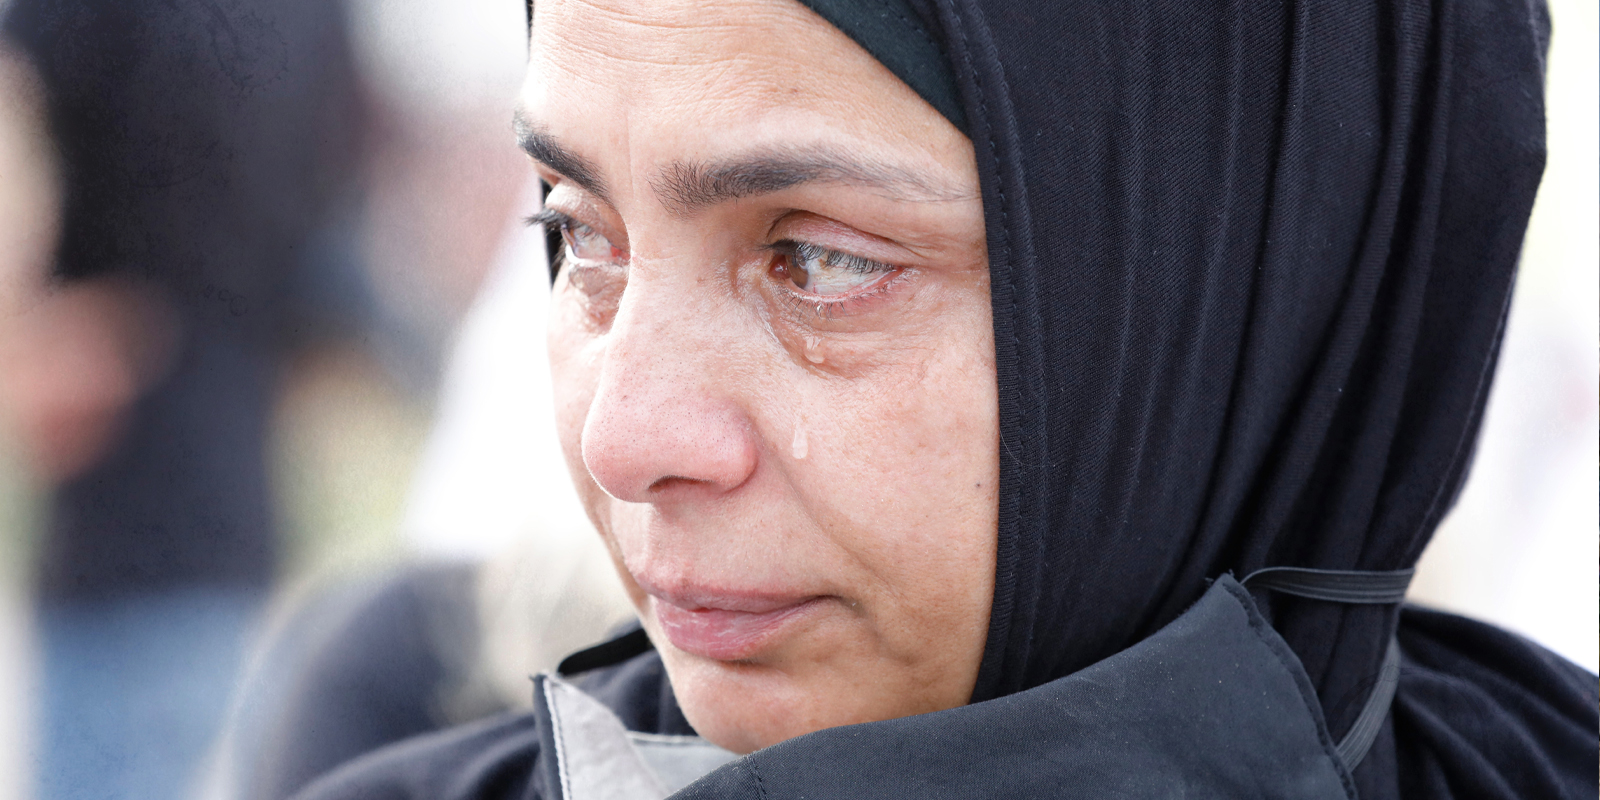 A women in beirut wearing a mask and crying